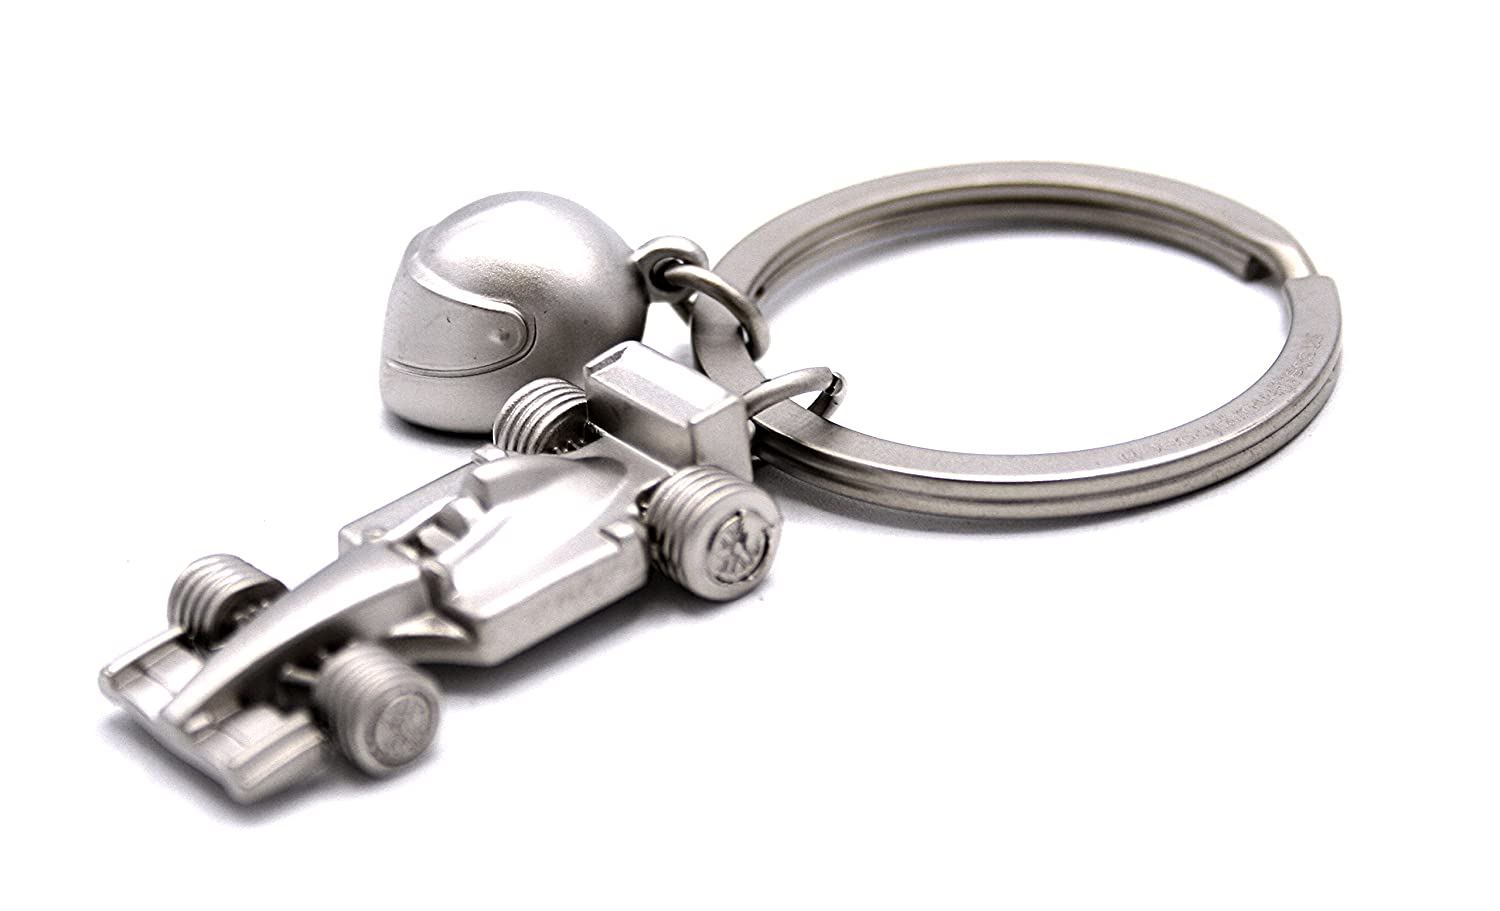 Keychain Formula One Race Car, Sports car silver with helmet.